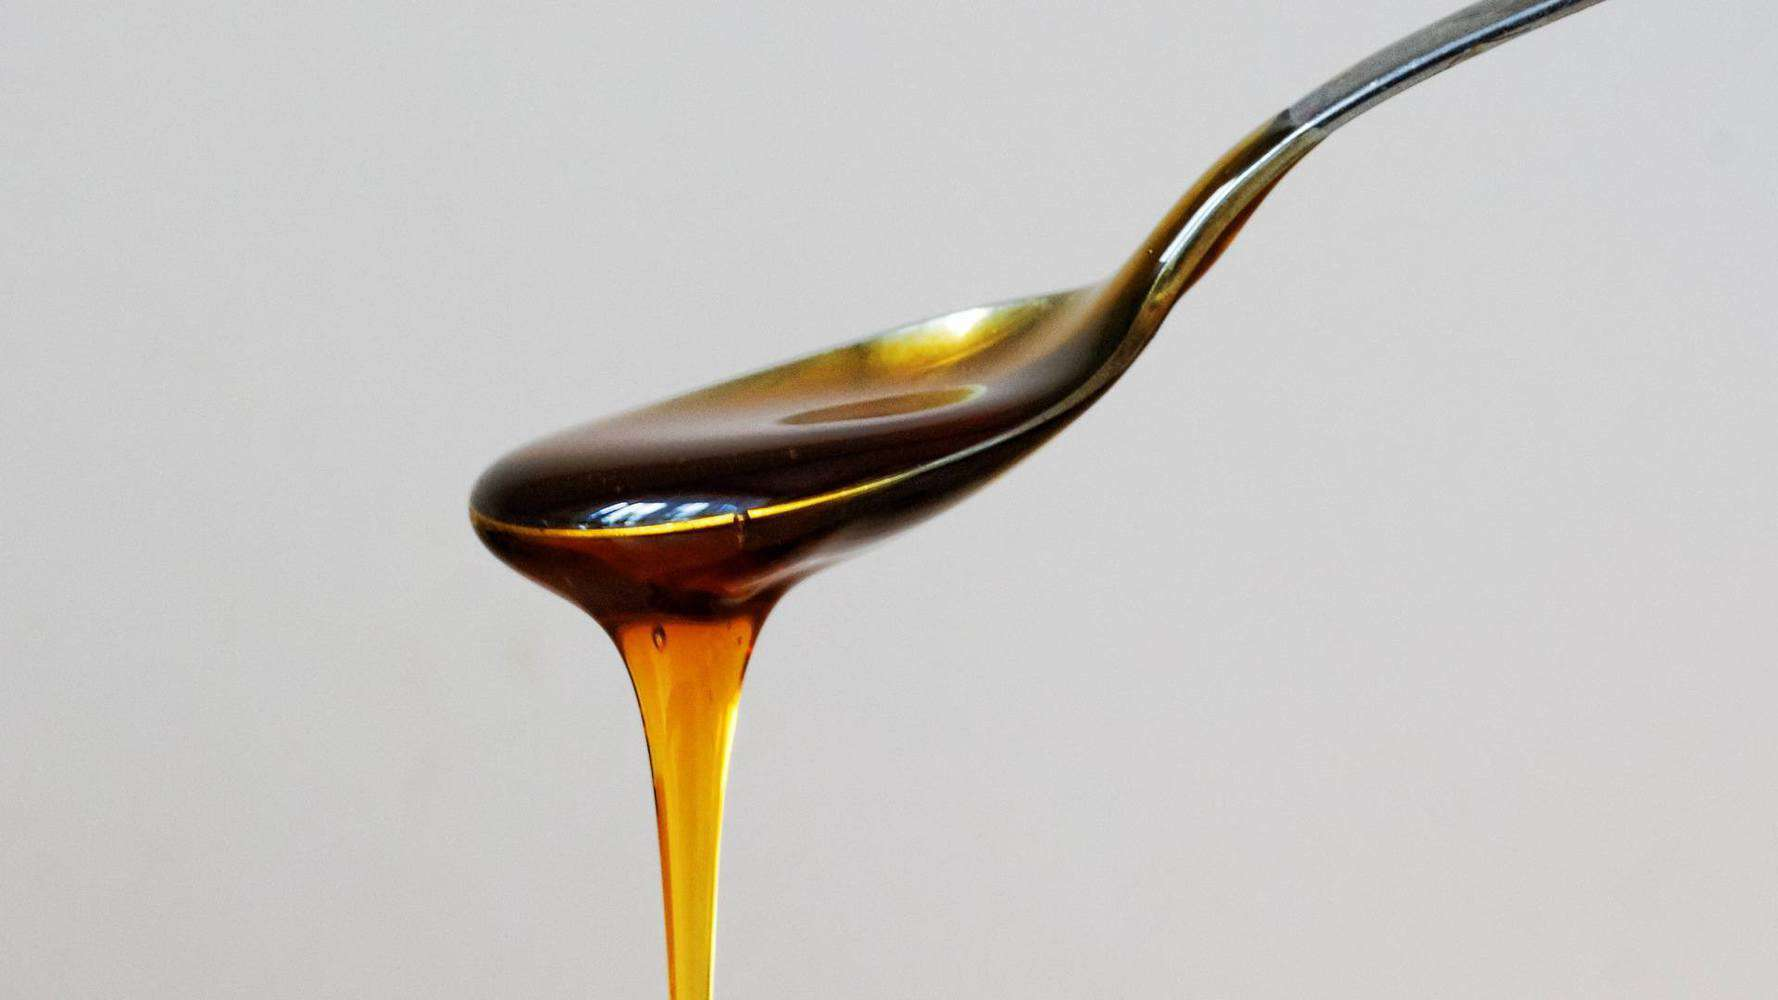 A spoonful of honey.